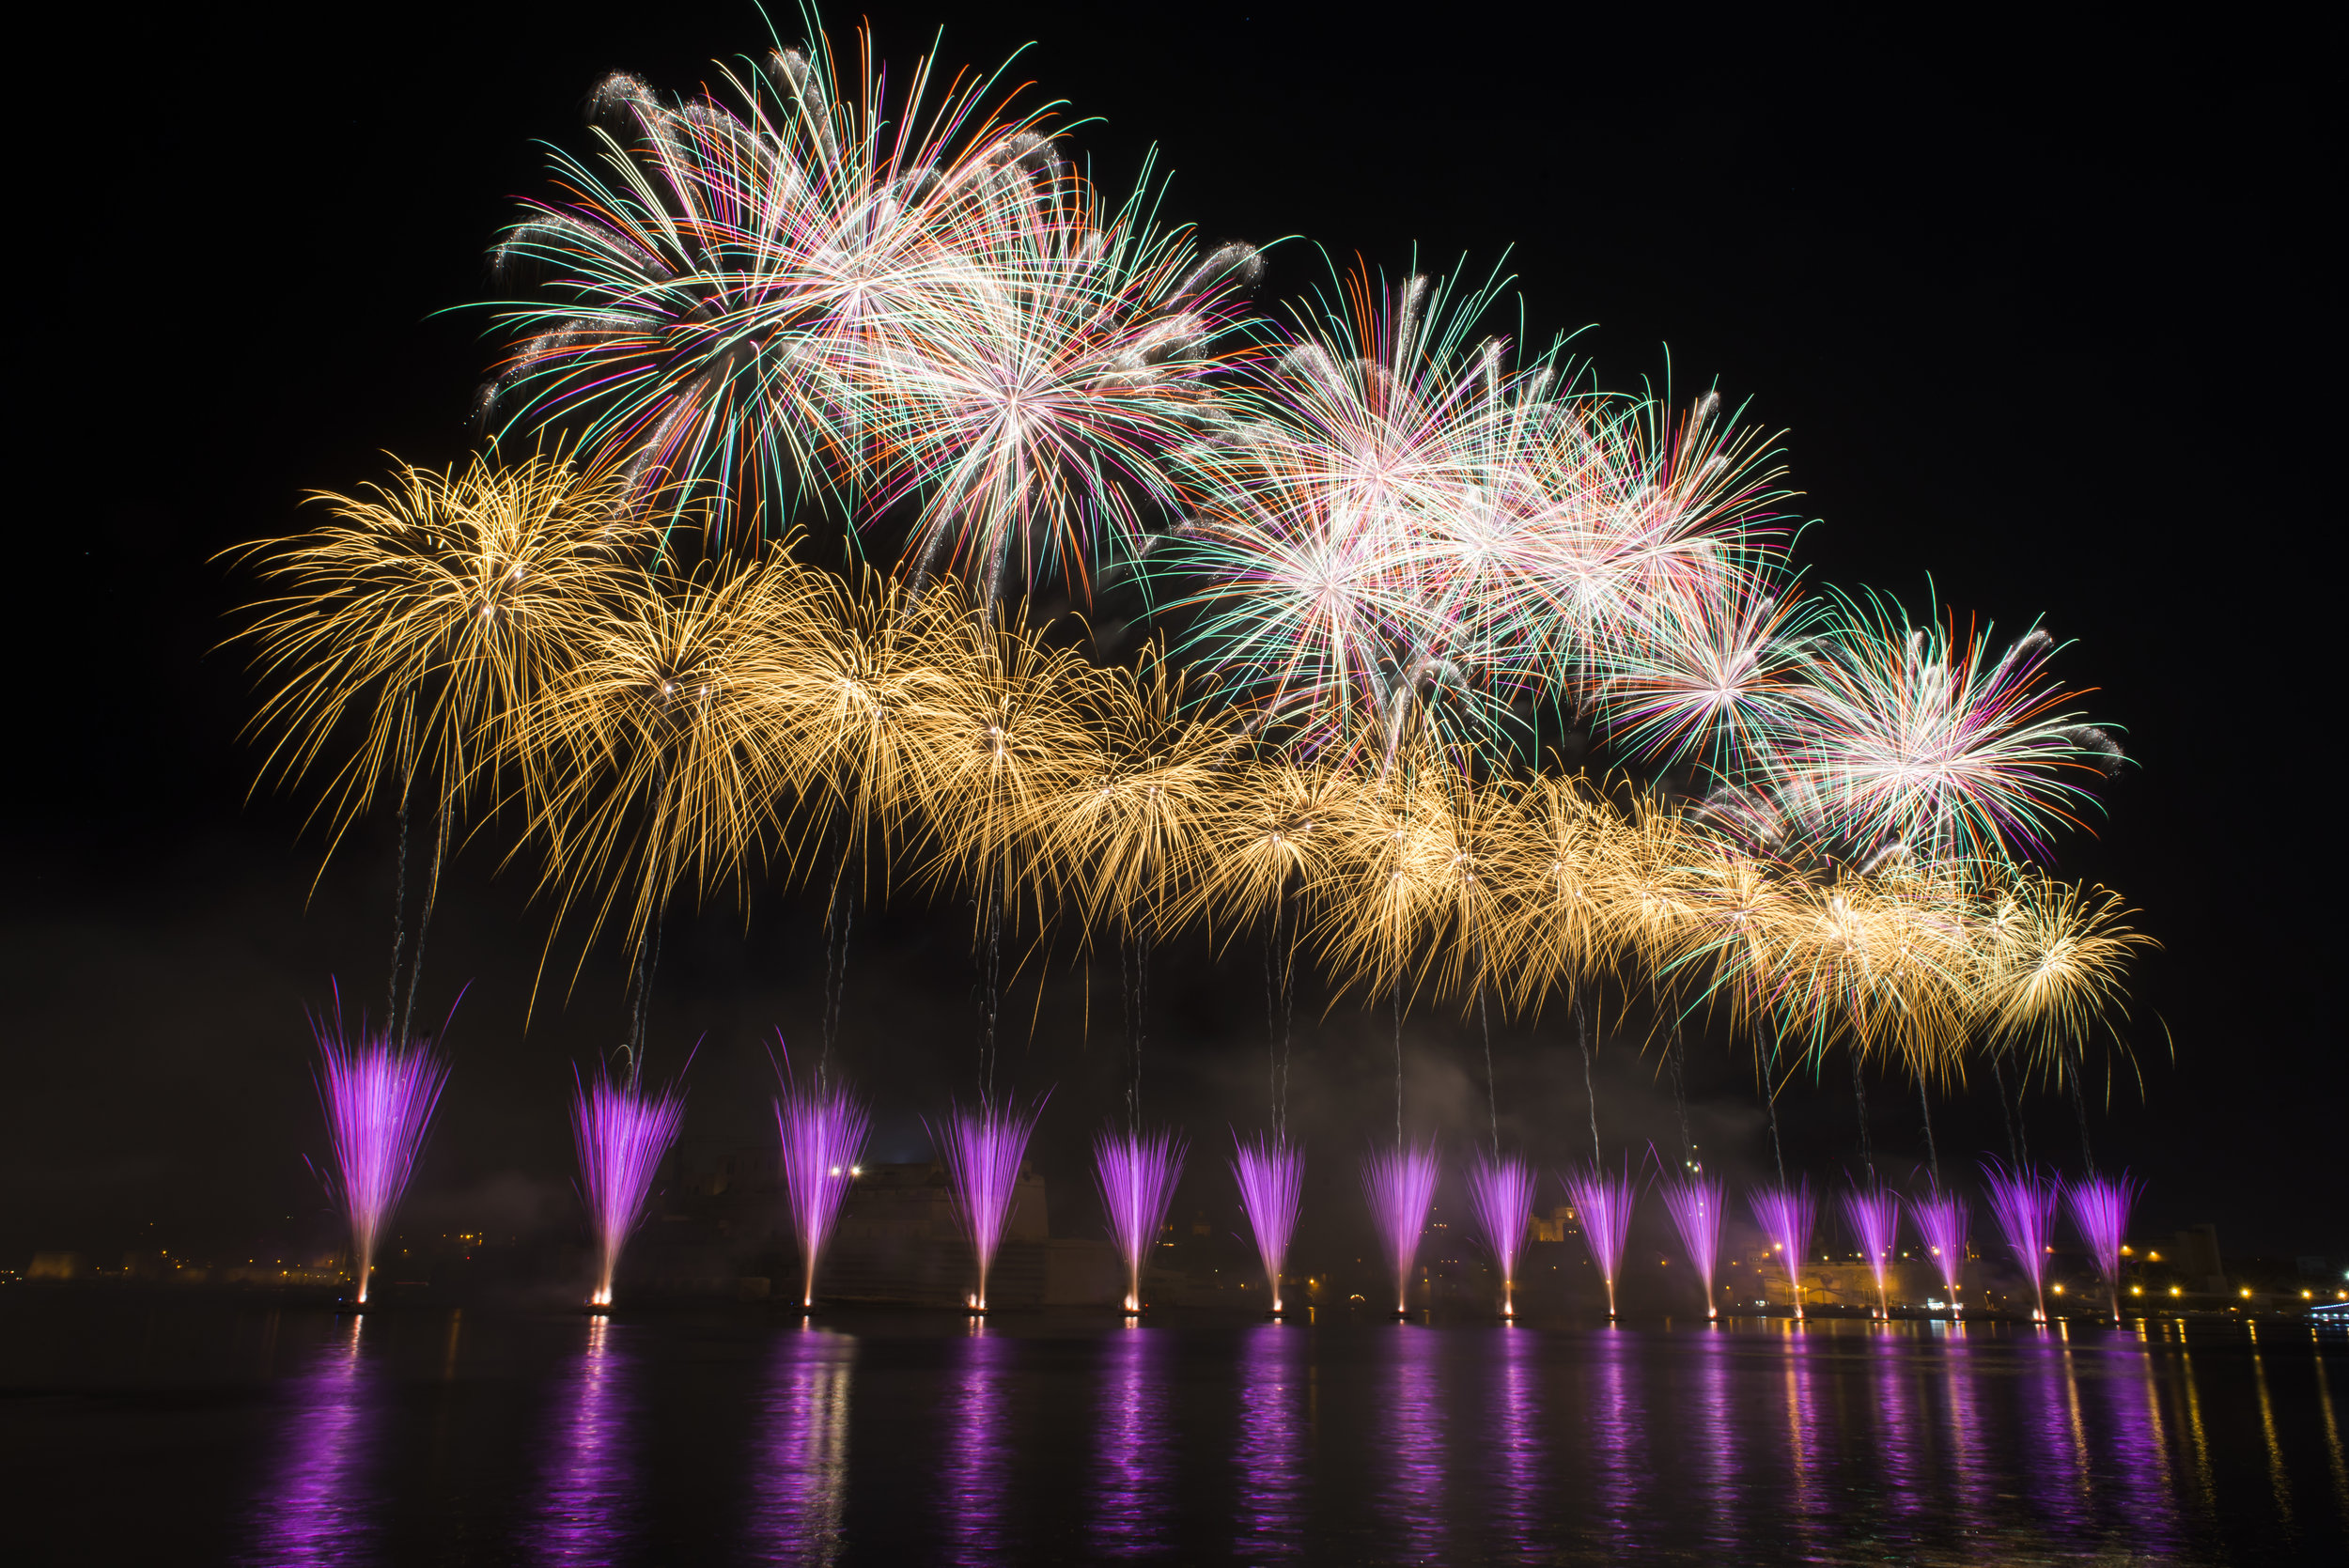 Fireworks in Malta are used to celebrate feasts, new year and landmark events